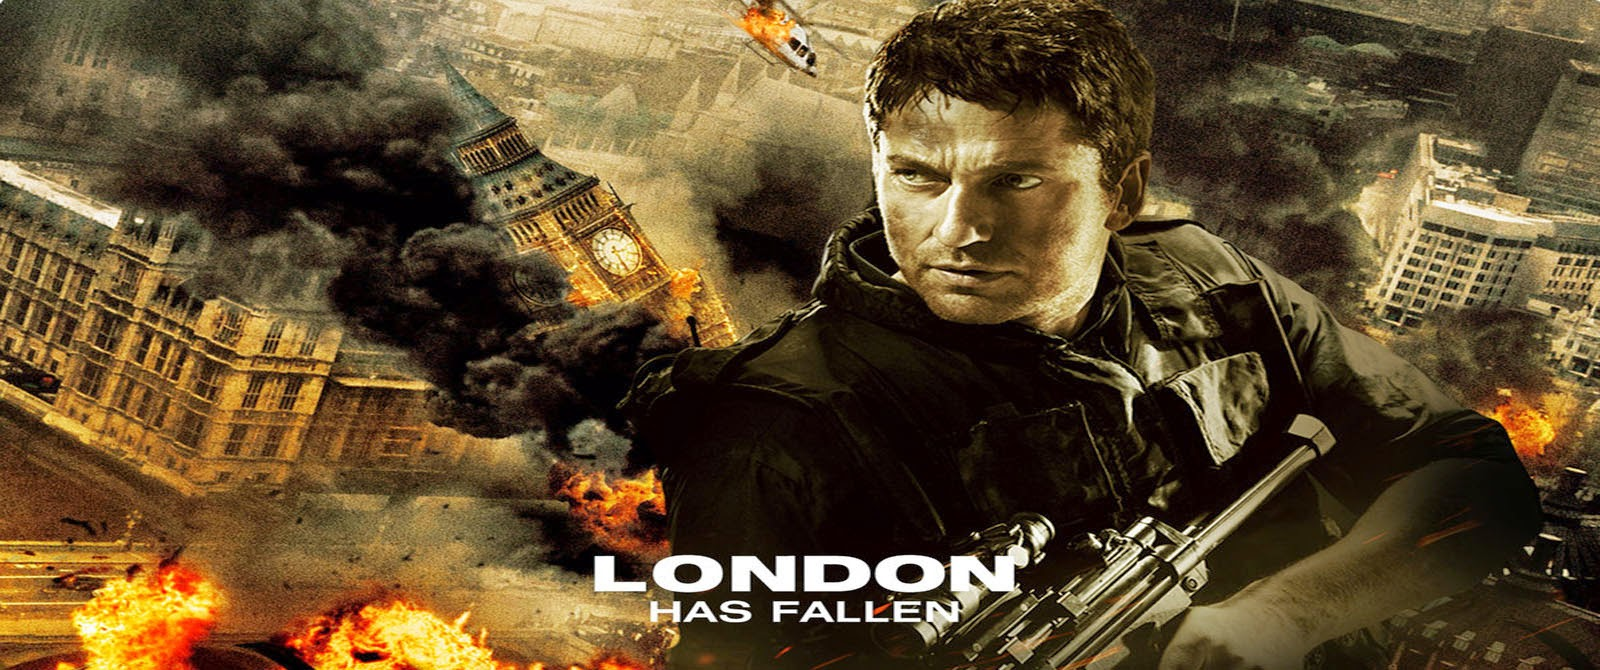 London Has Fallen (2016) free online